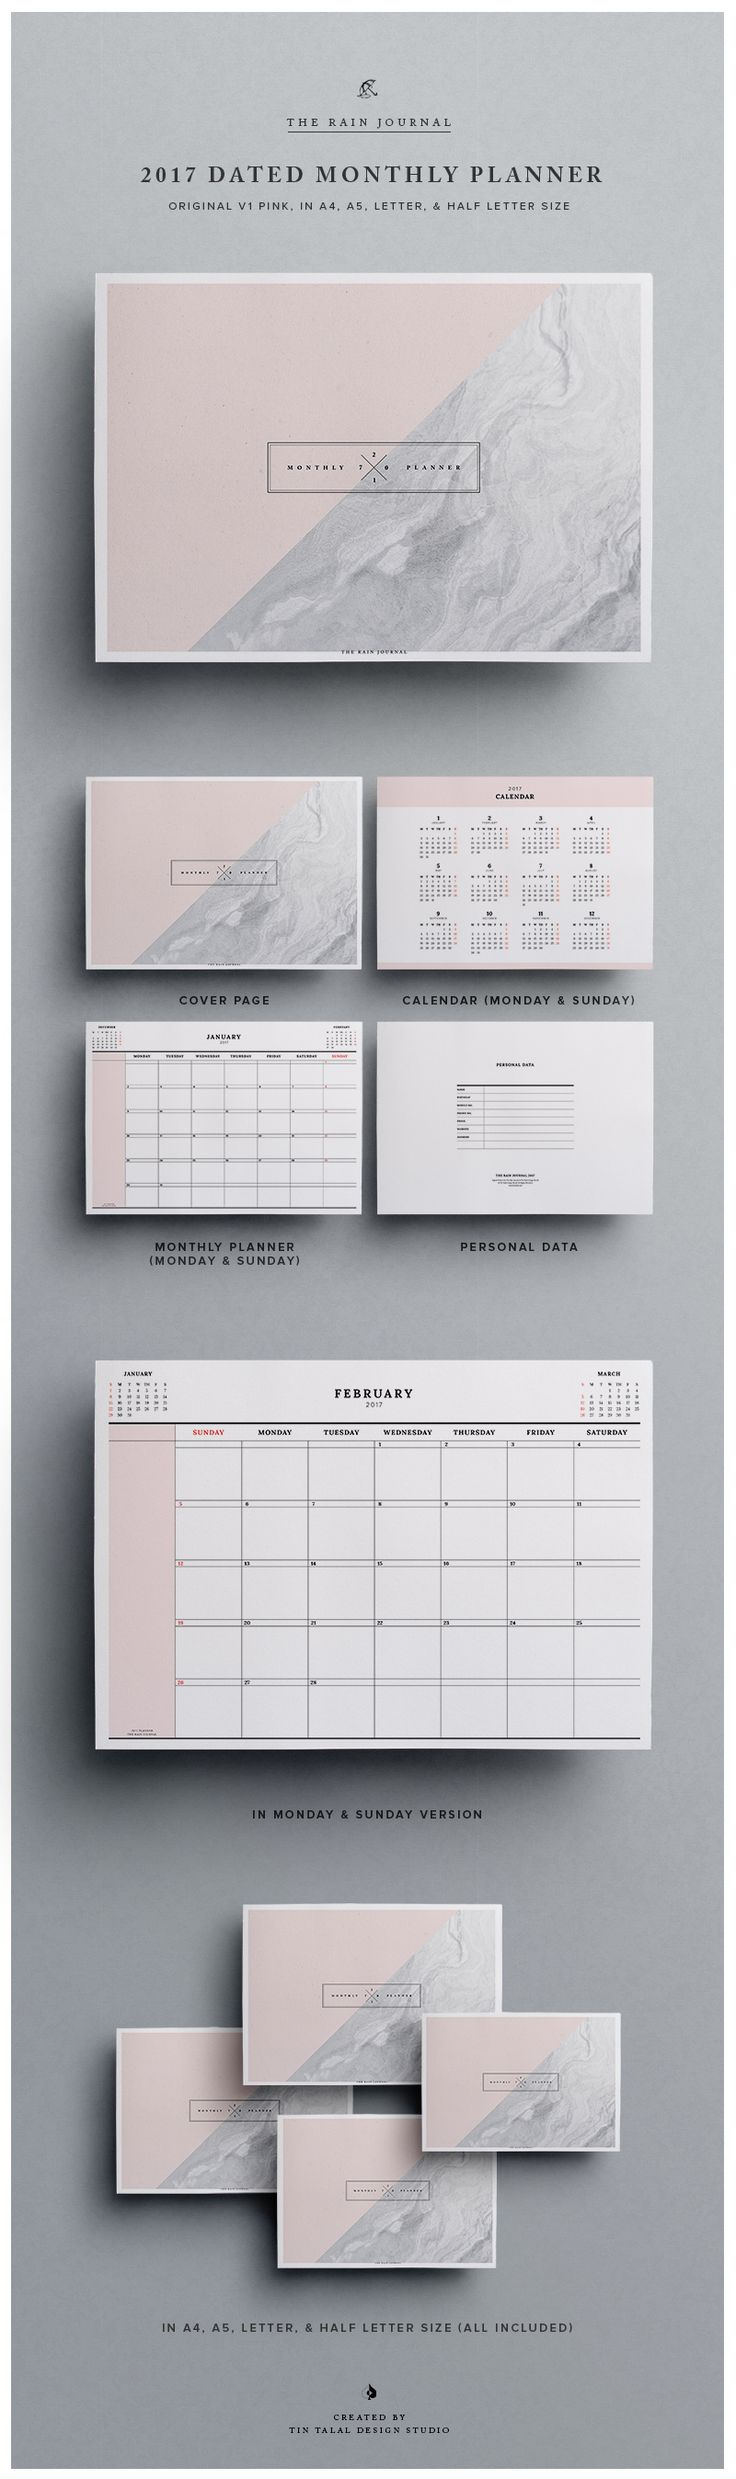 Laurdiy Calendar : Best desk calendars ideas on pinterest calender